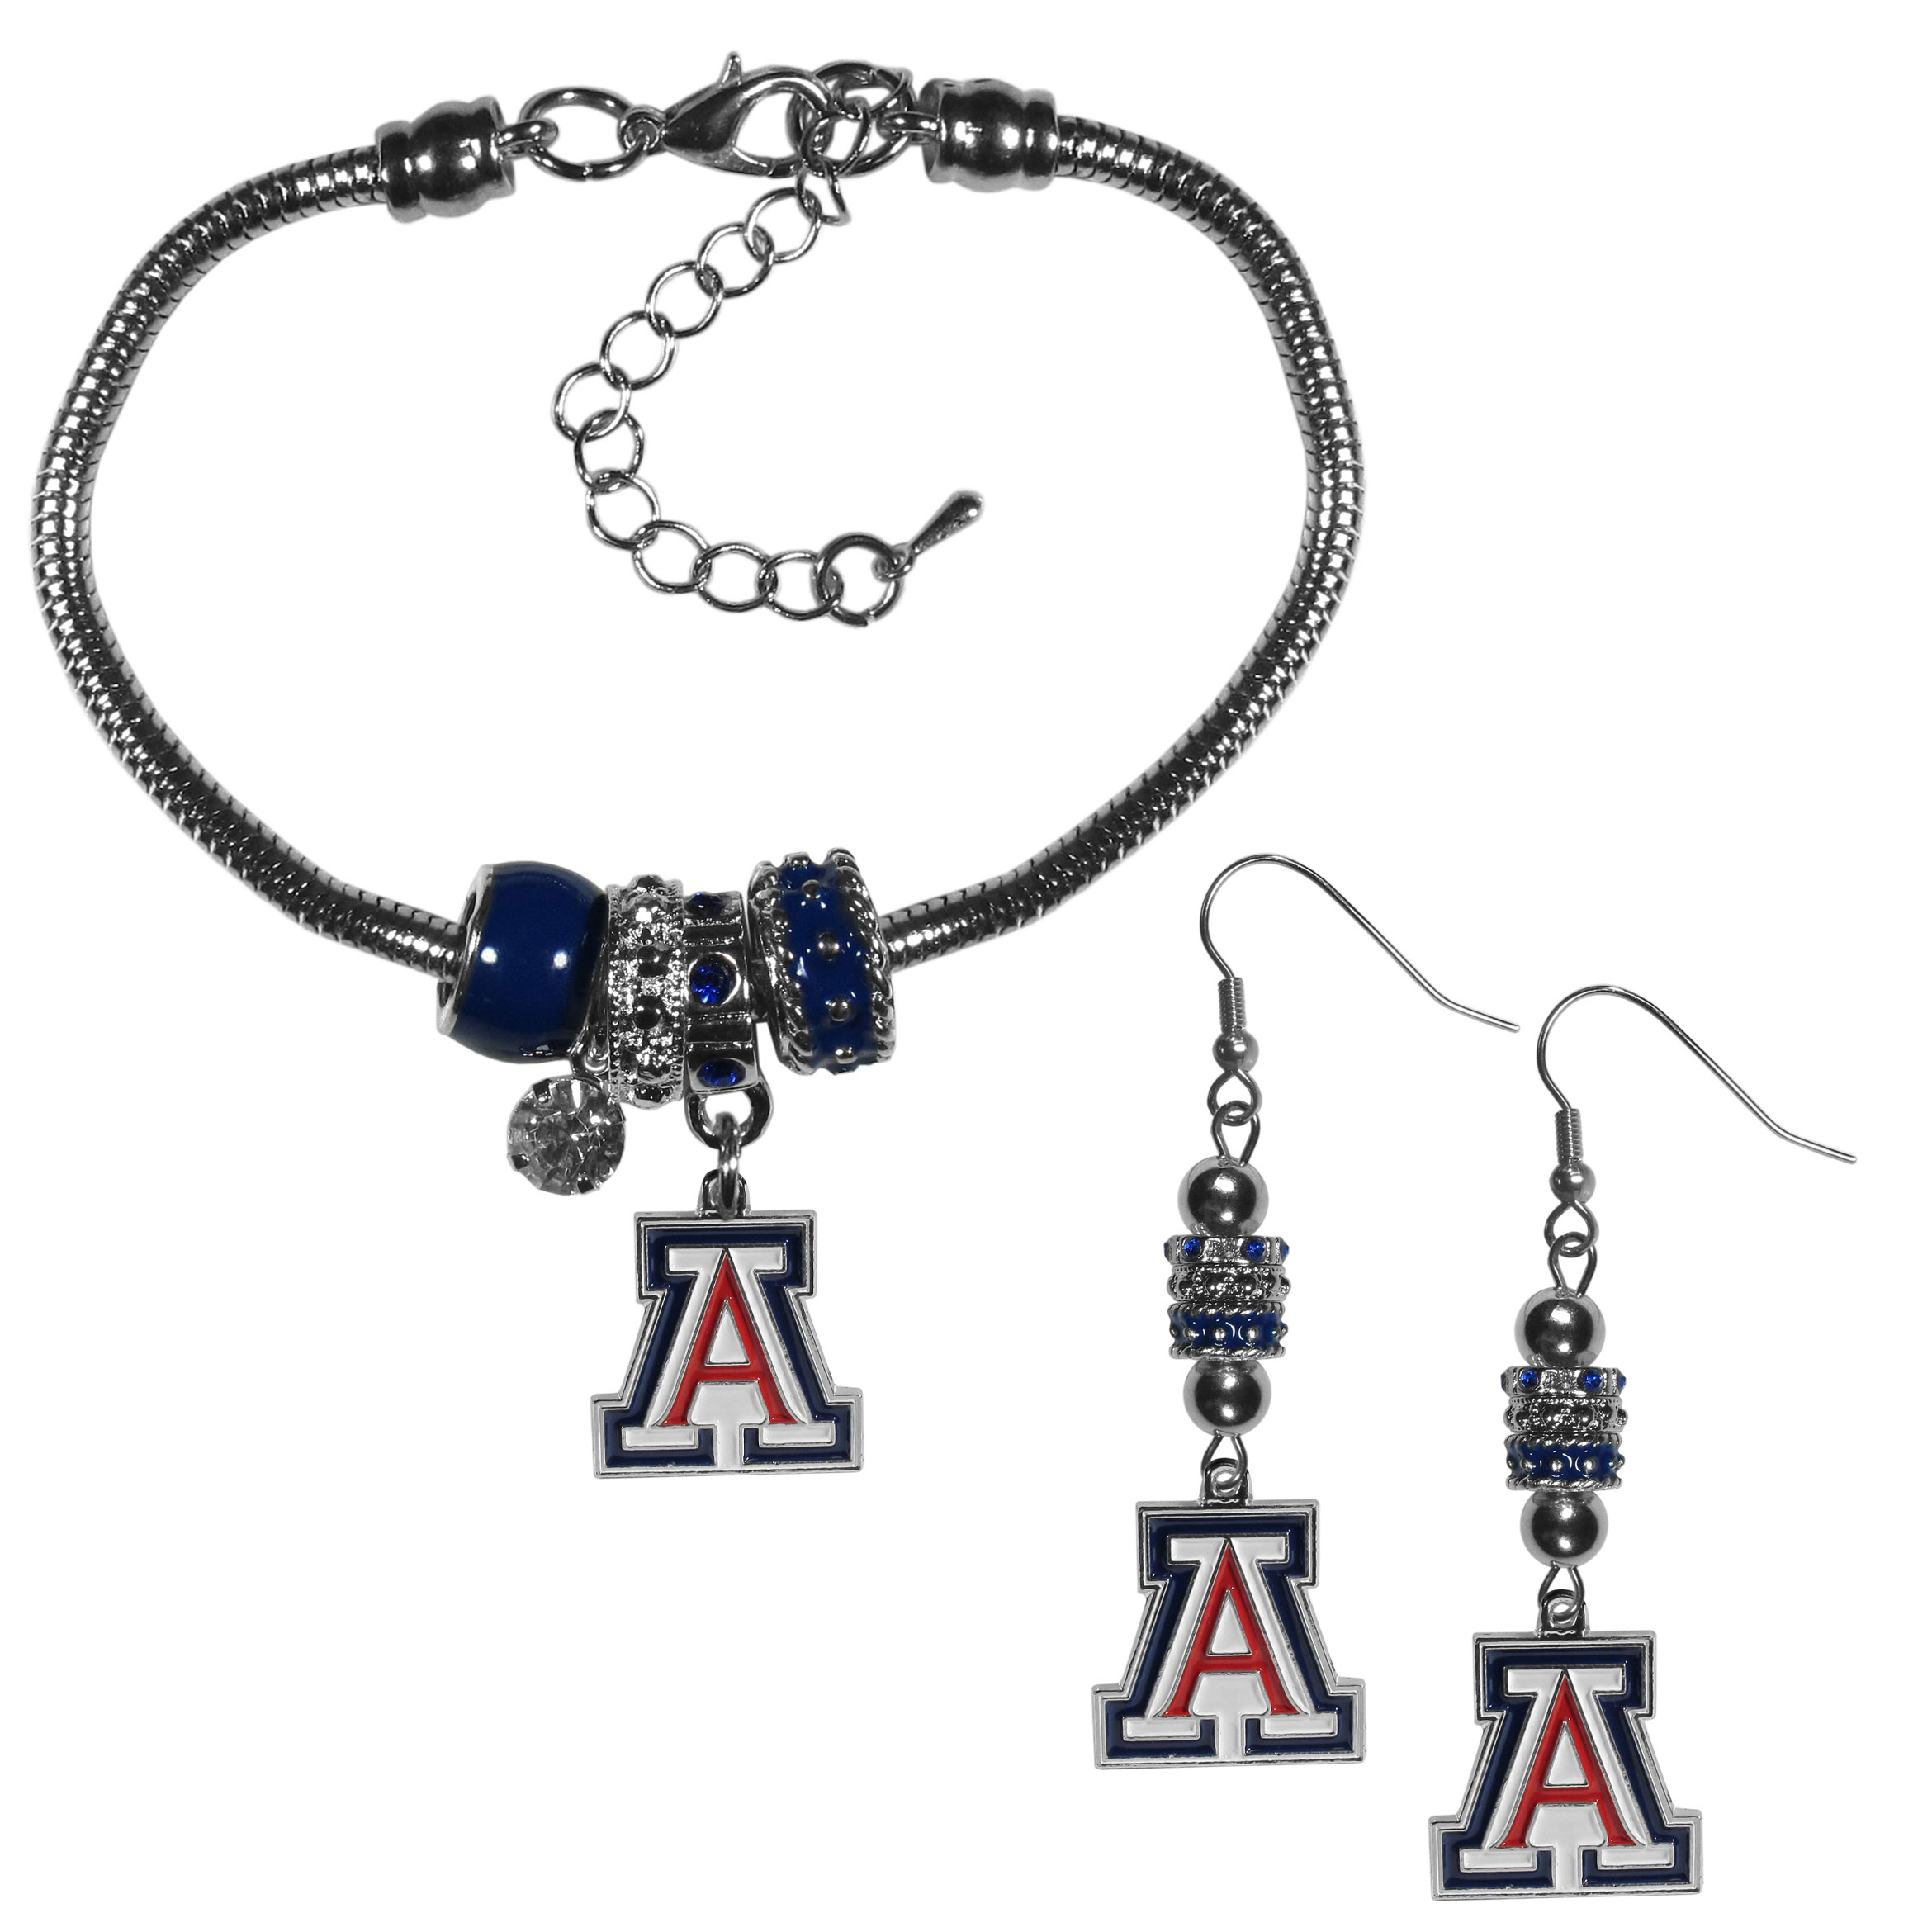 Arizona Wildcats Euro Bead Earrings and Bracelet Set - We combine the popular Euro bead style with your love of the Arizona Wildcats with this beautiful jewelry set that includes earrings and a matching bracelet. The stylish earrings feature hypoallergenic, nickel free fishhook posts and 3 team colored Euro beads and a metal team charm. The matching snake chain bracelet is 7.5 inches long with a 2 inch extender and 4 Euro beads with a rhinestone charm and team charm.